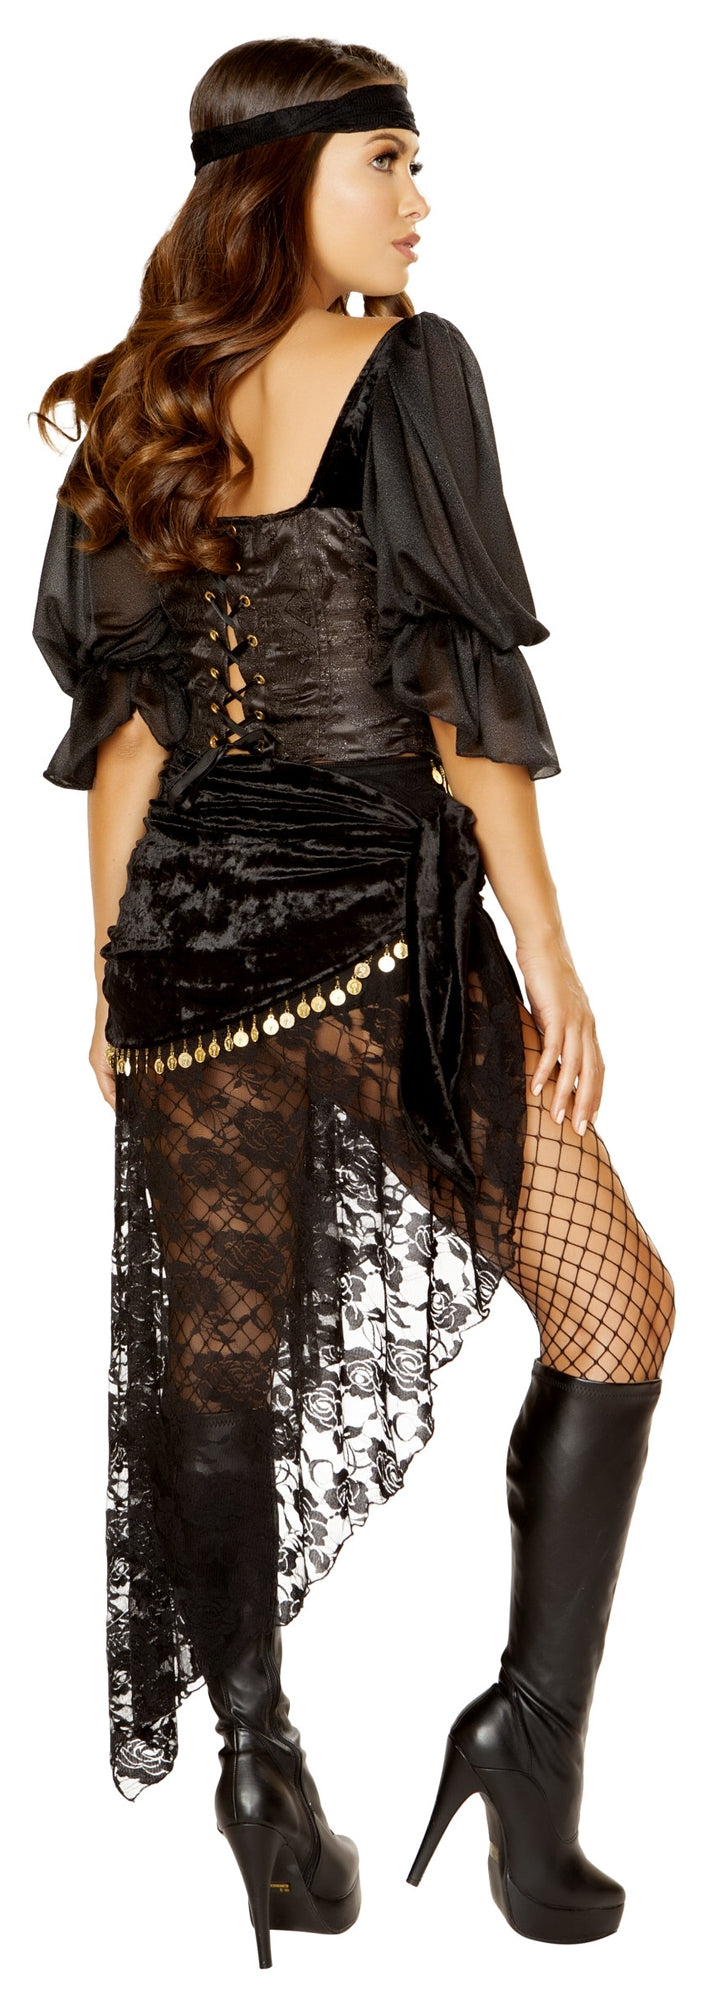 RM-4880 Gypsy Maiden costume back